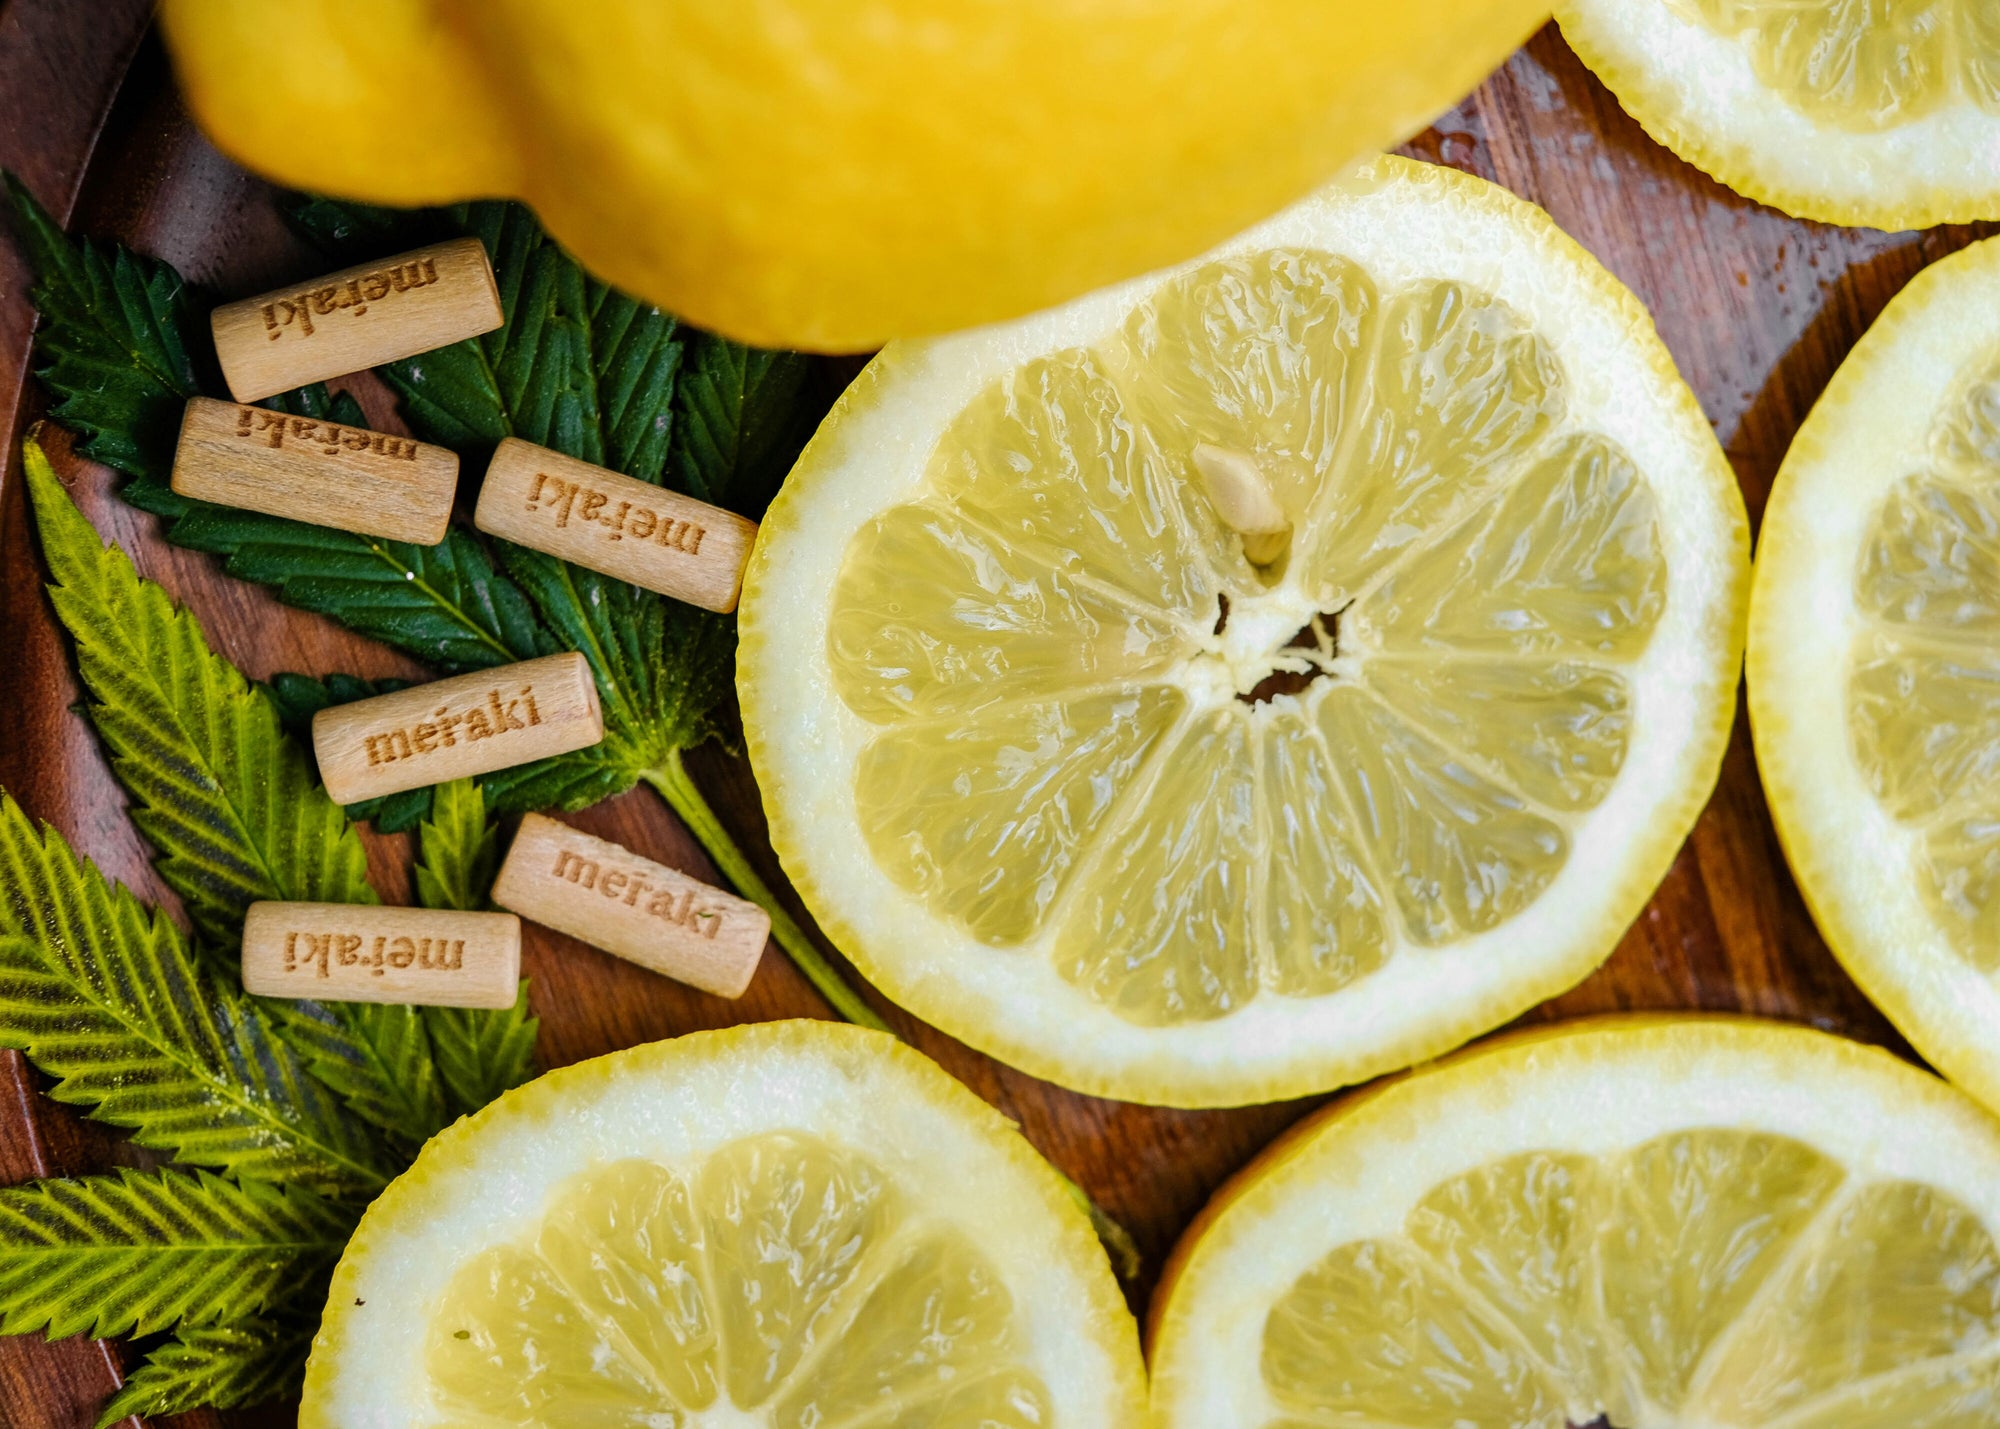 Meraki Tips Terpene Profile: Limonene